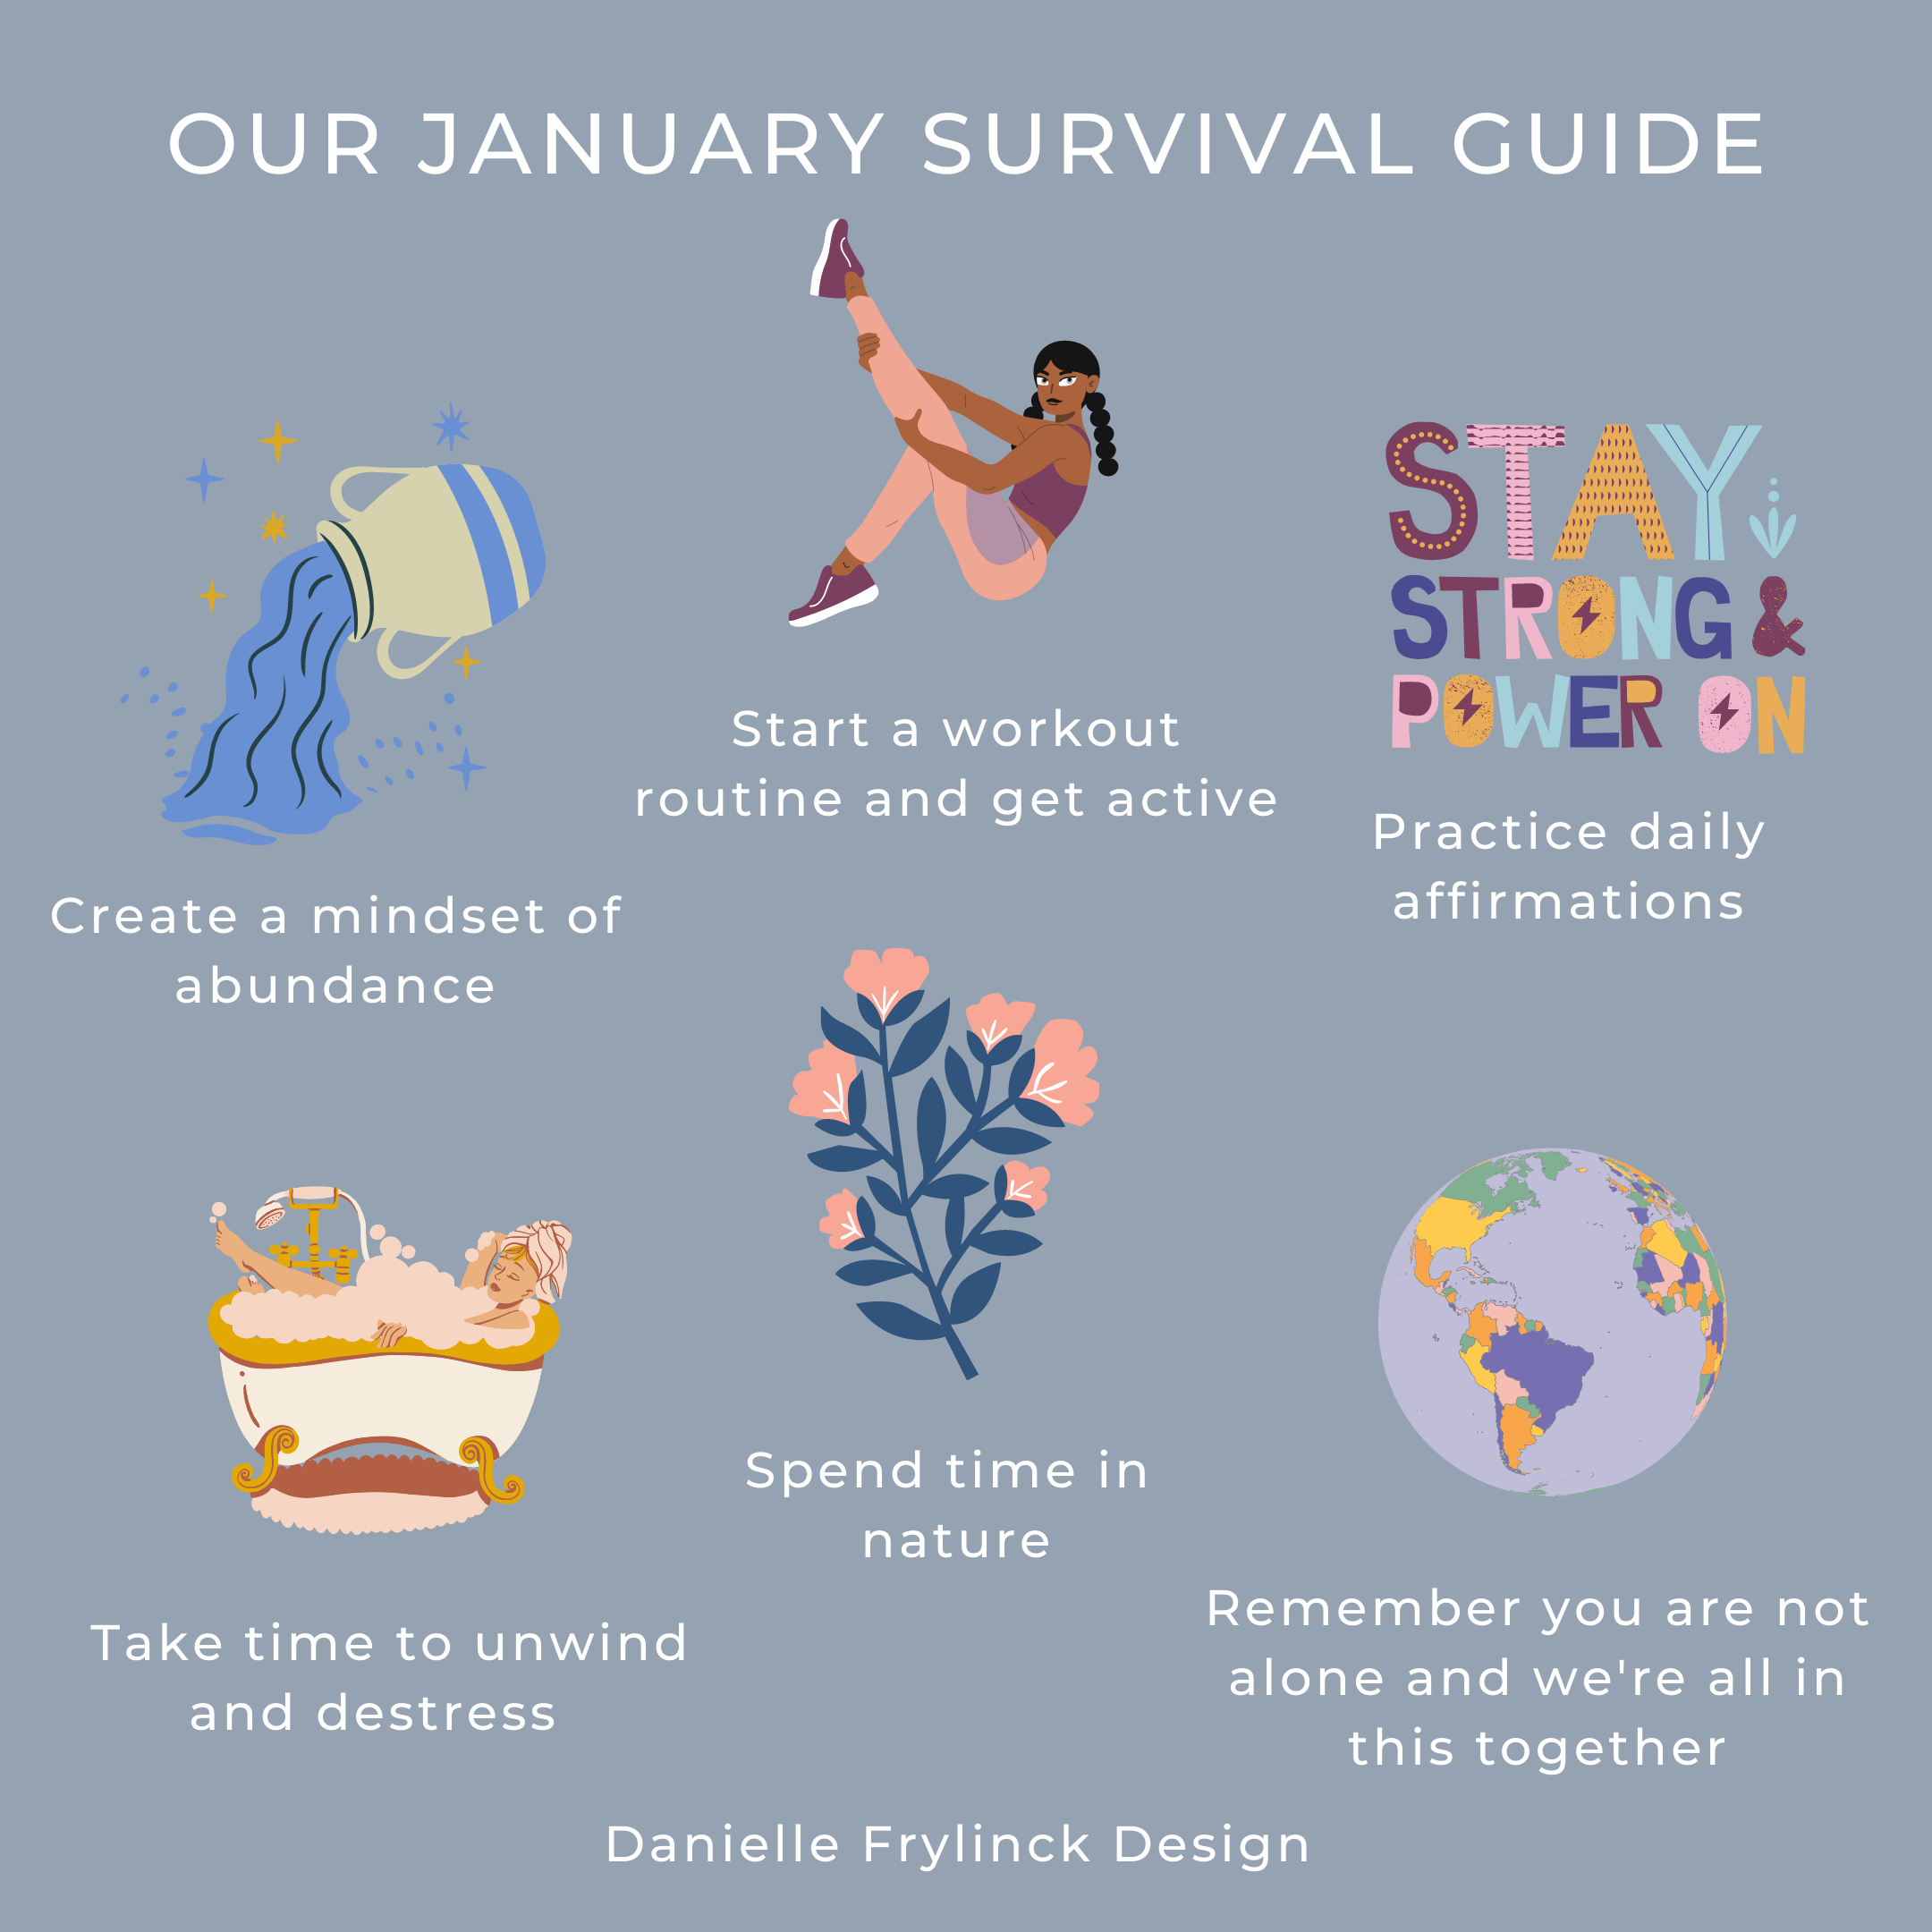 January 2021 survival guide